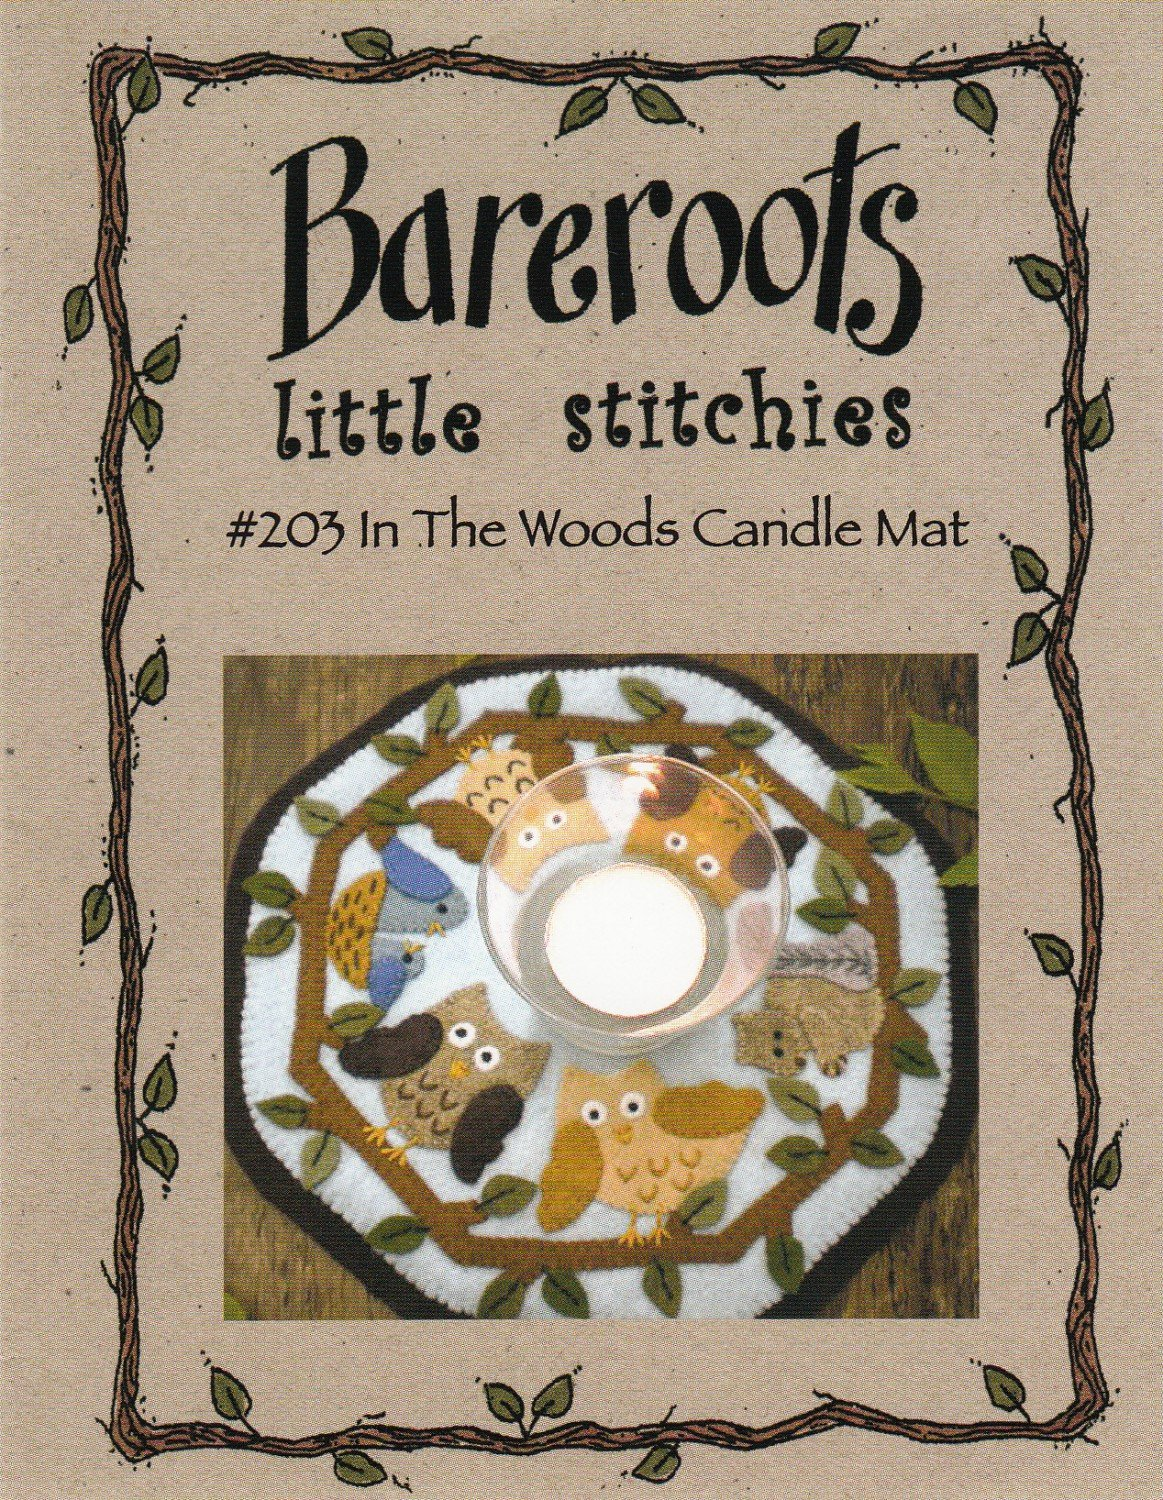 In the Woods Candle Mat by Bareroots Little Stitches